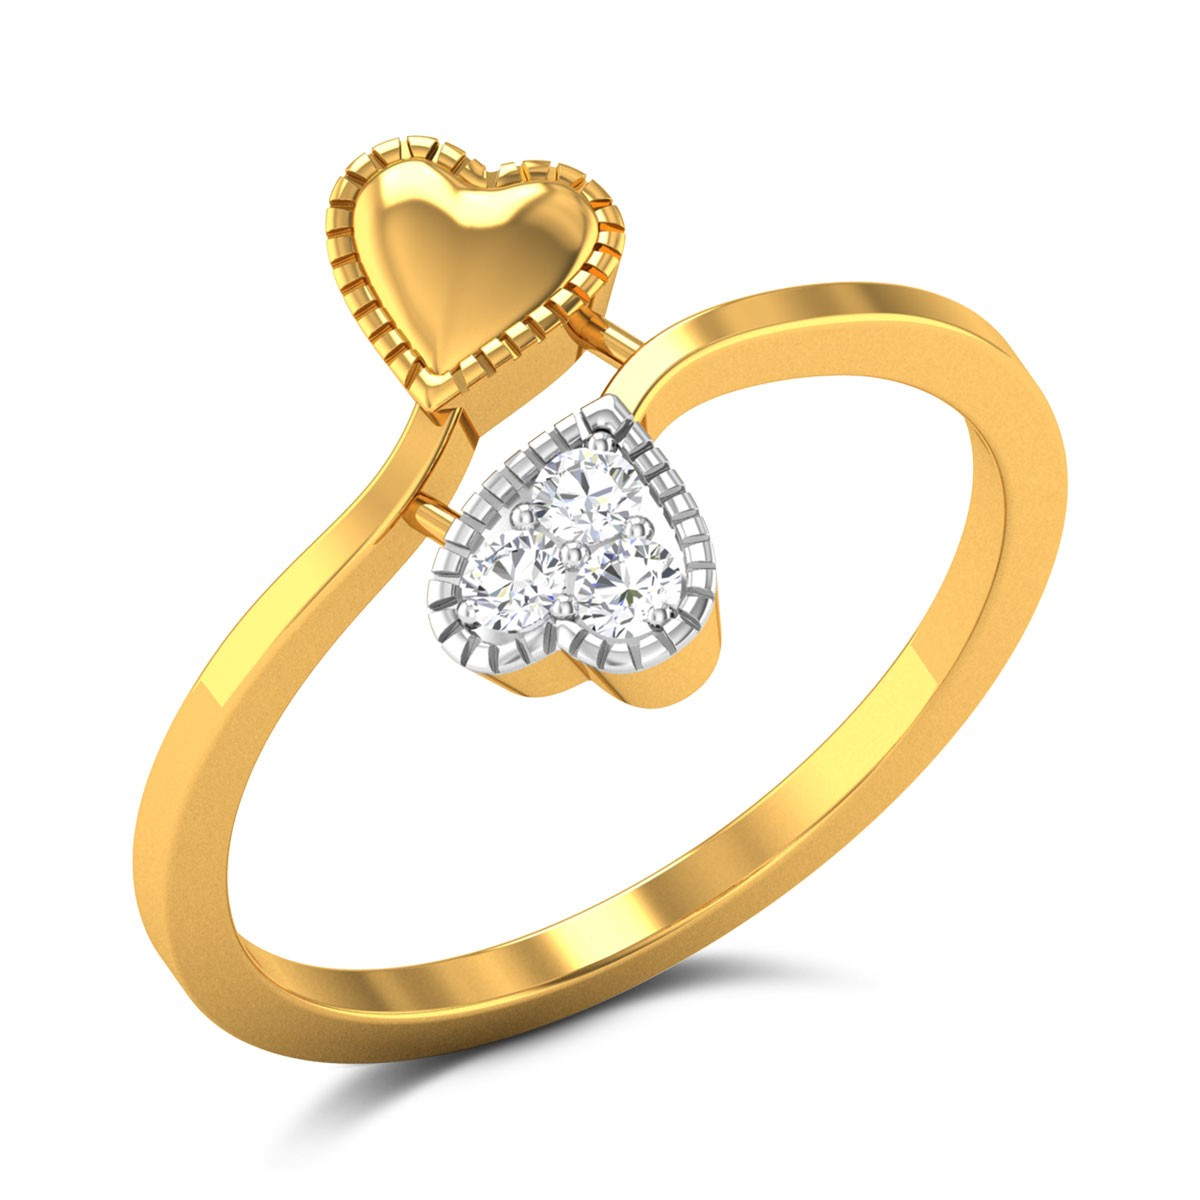 Buy Rhonda Hearts Diamond Ring in 2.52 Grams Gold Online